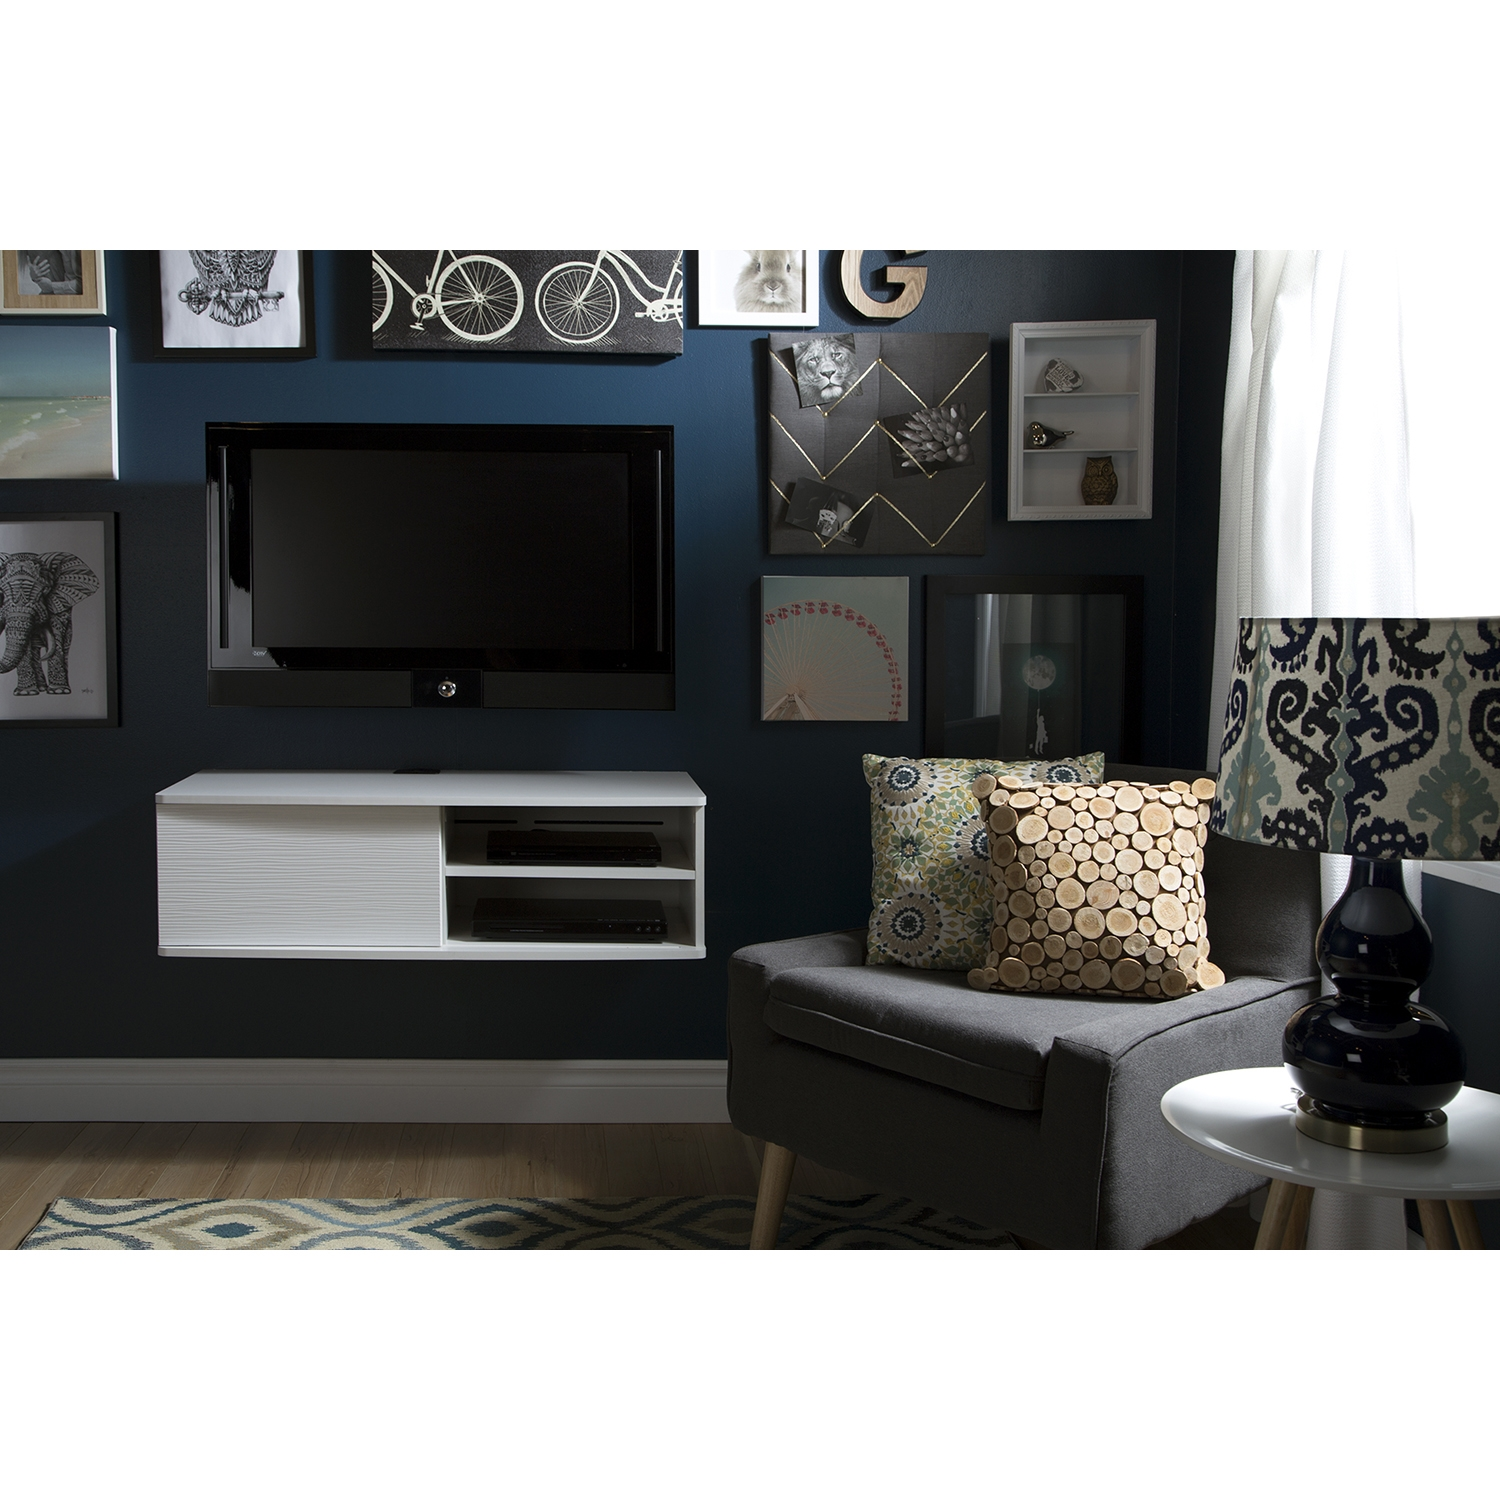 "Agora 38"" Wide Wall Mounted Media Console - Pure White - SS-9029674"